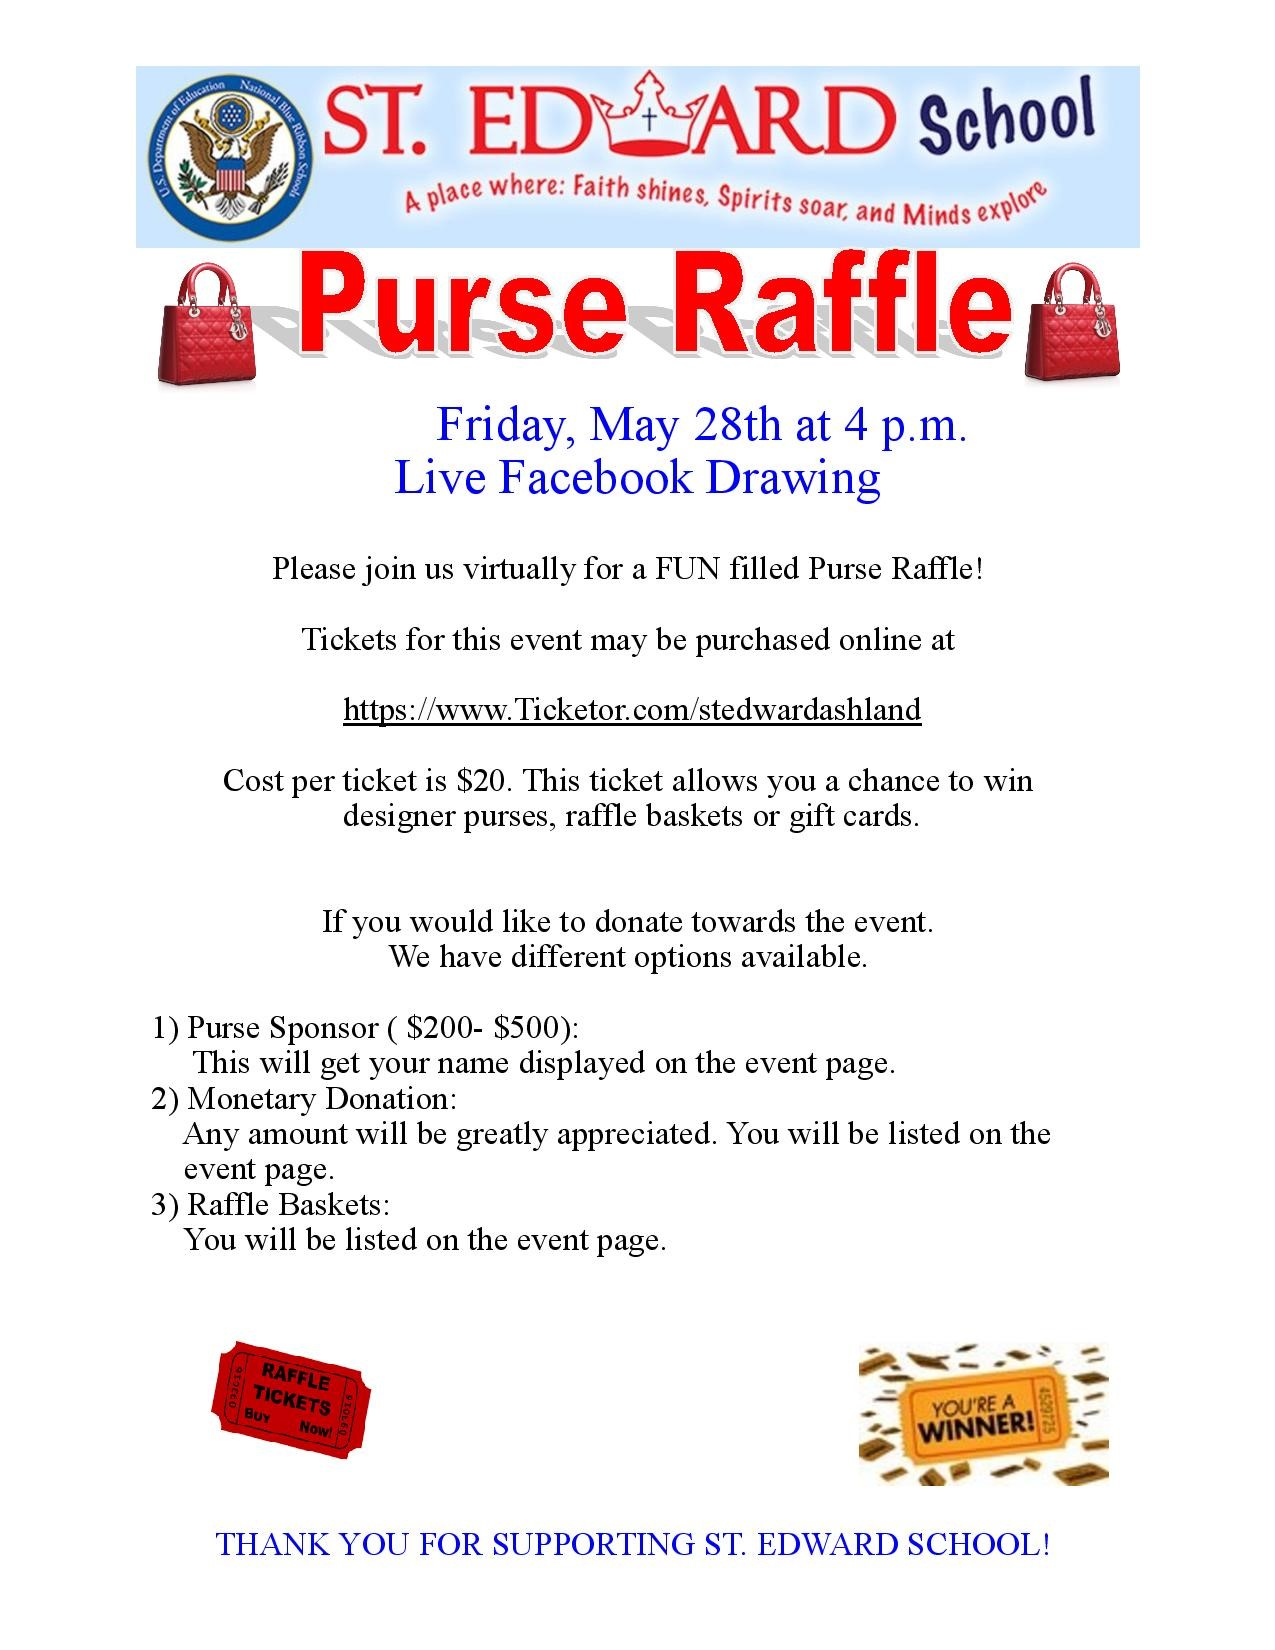 St. Edward School Purse Raffle  on May 03, 16:00@Facebook Live Event - Buy tickets and Get information on stedwardashland.org